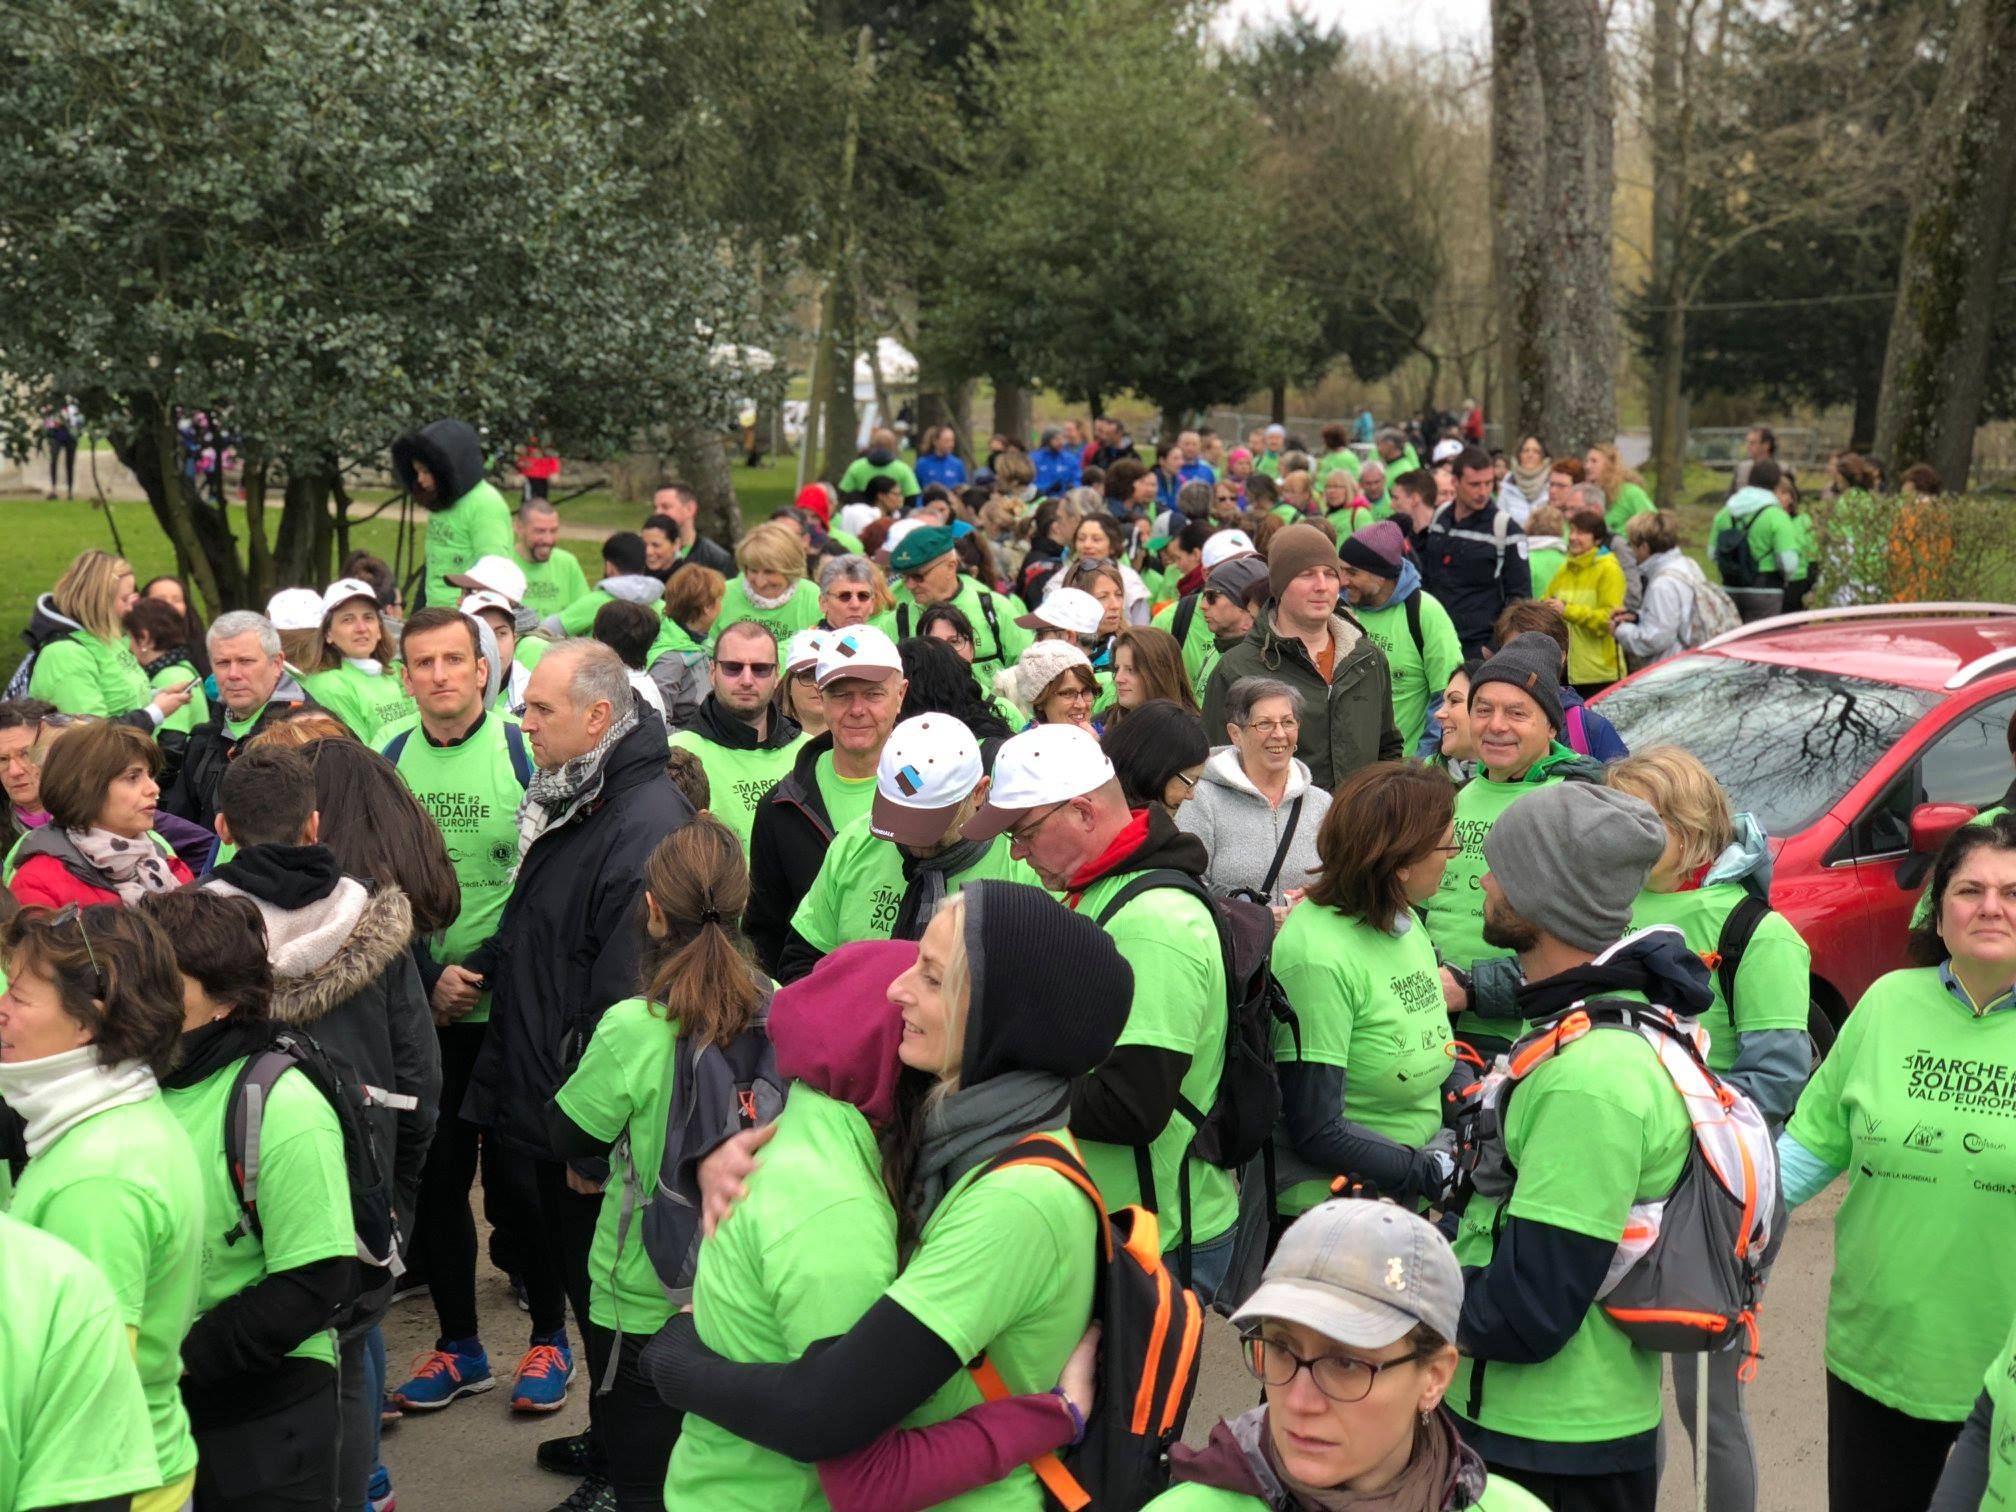 Marche solidaire Val d'Europe 2018